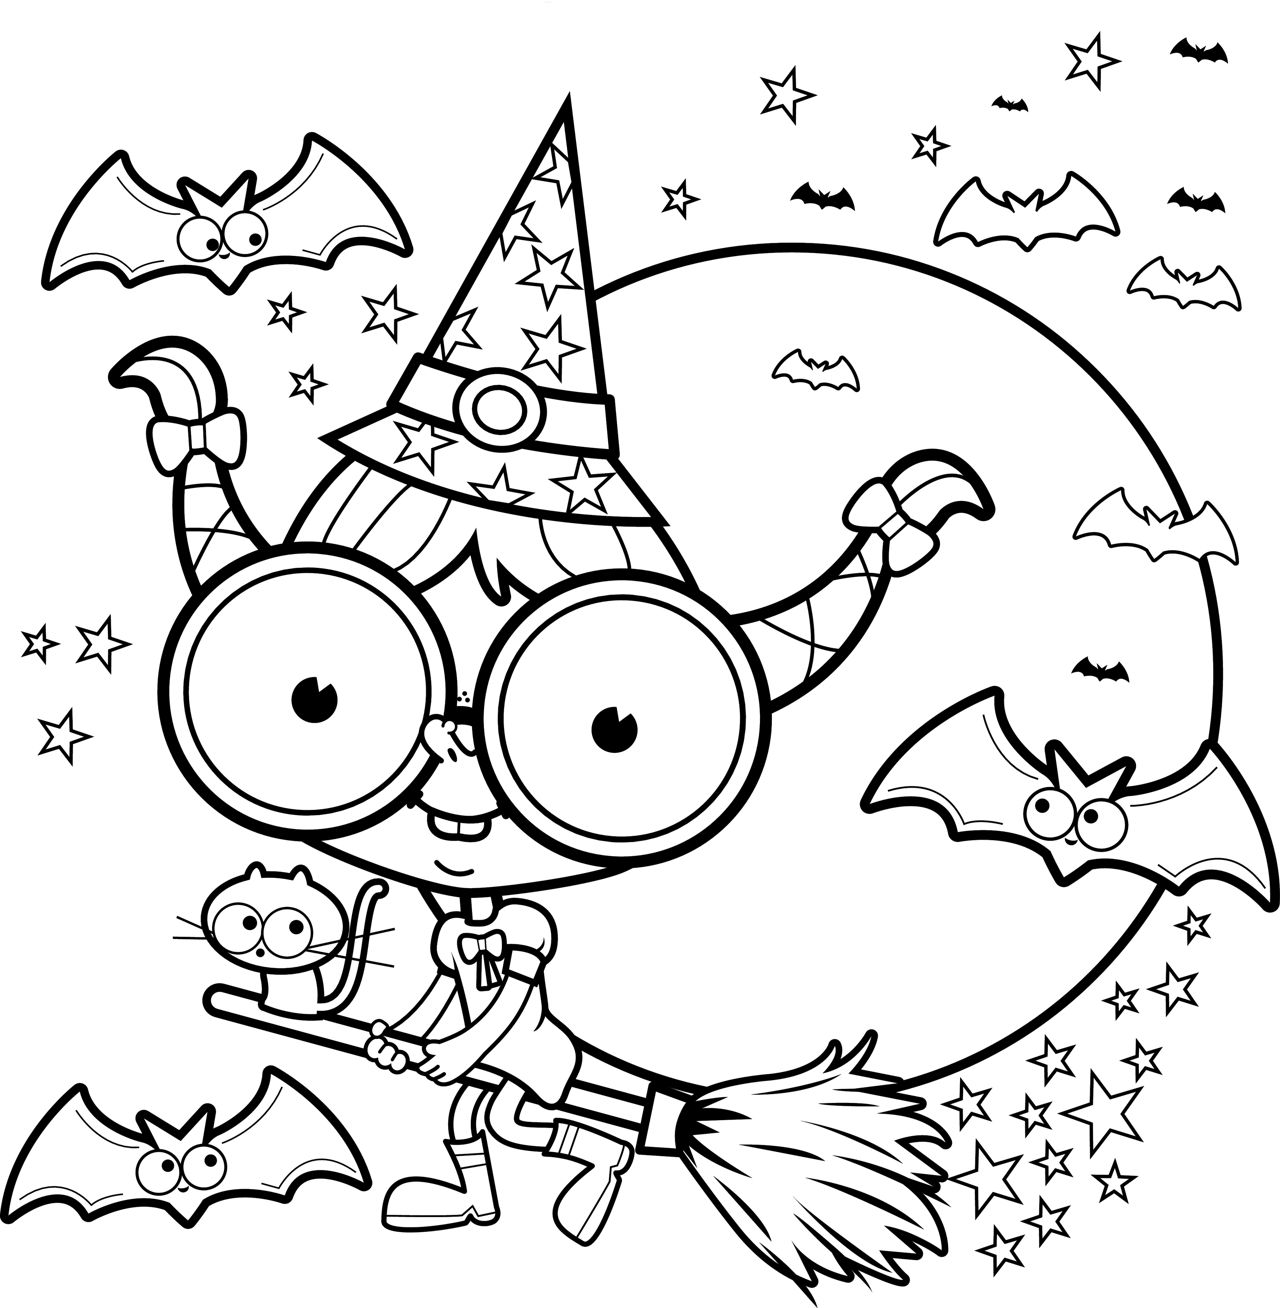 coloring pages halloween halloween coloring pages for kids 100 pictures print halloween coloring pages